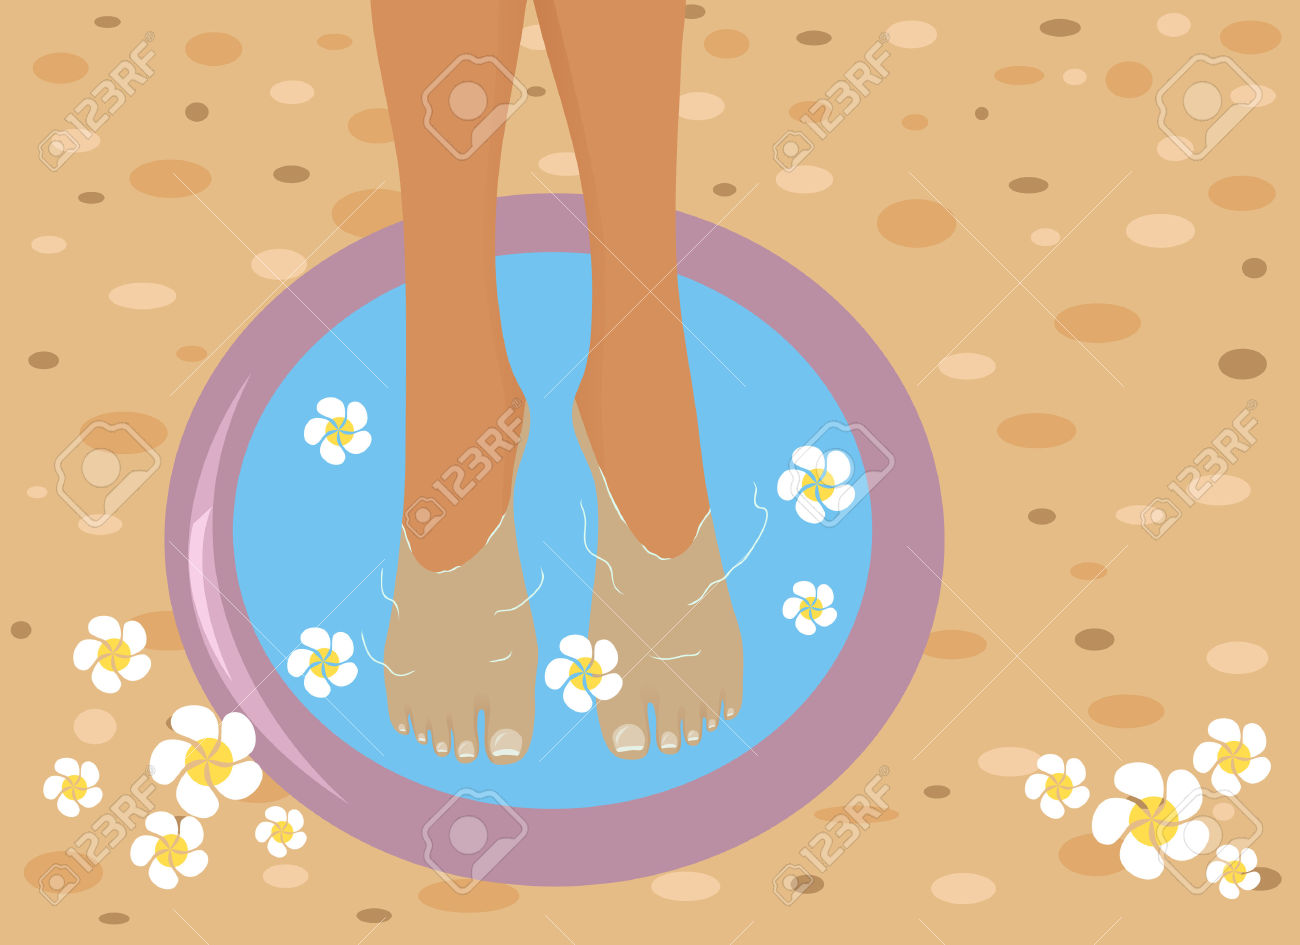 Foot spa clipart picture library download Foot spa clipart - Clip Art Library picture library download